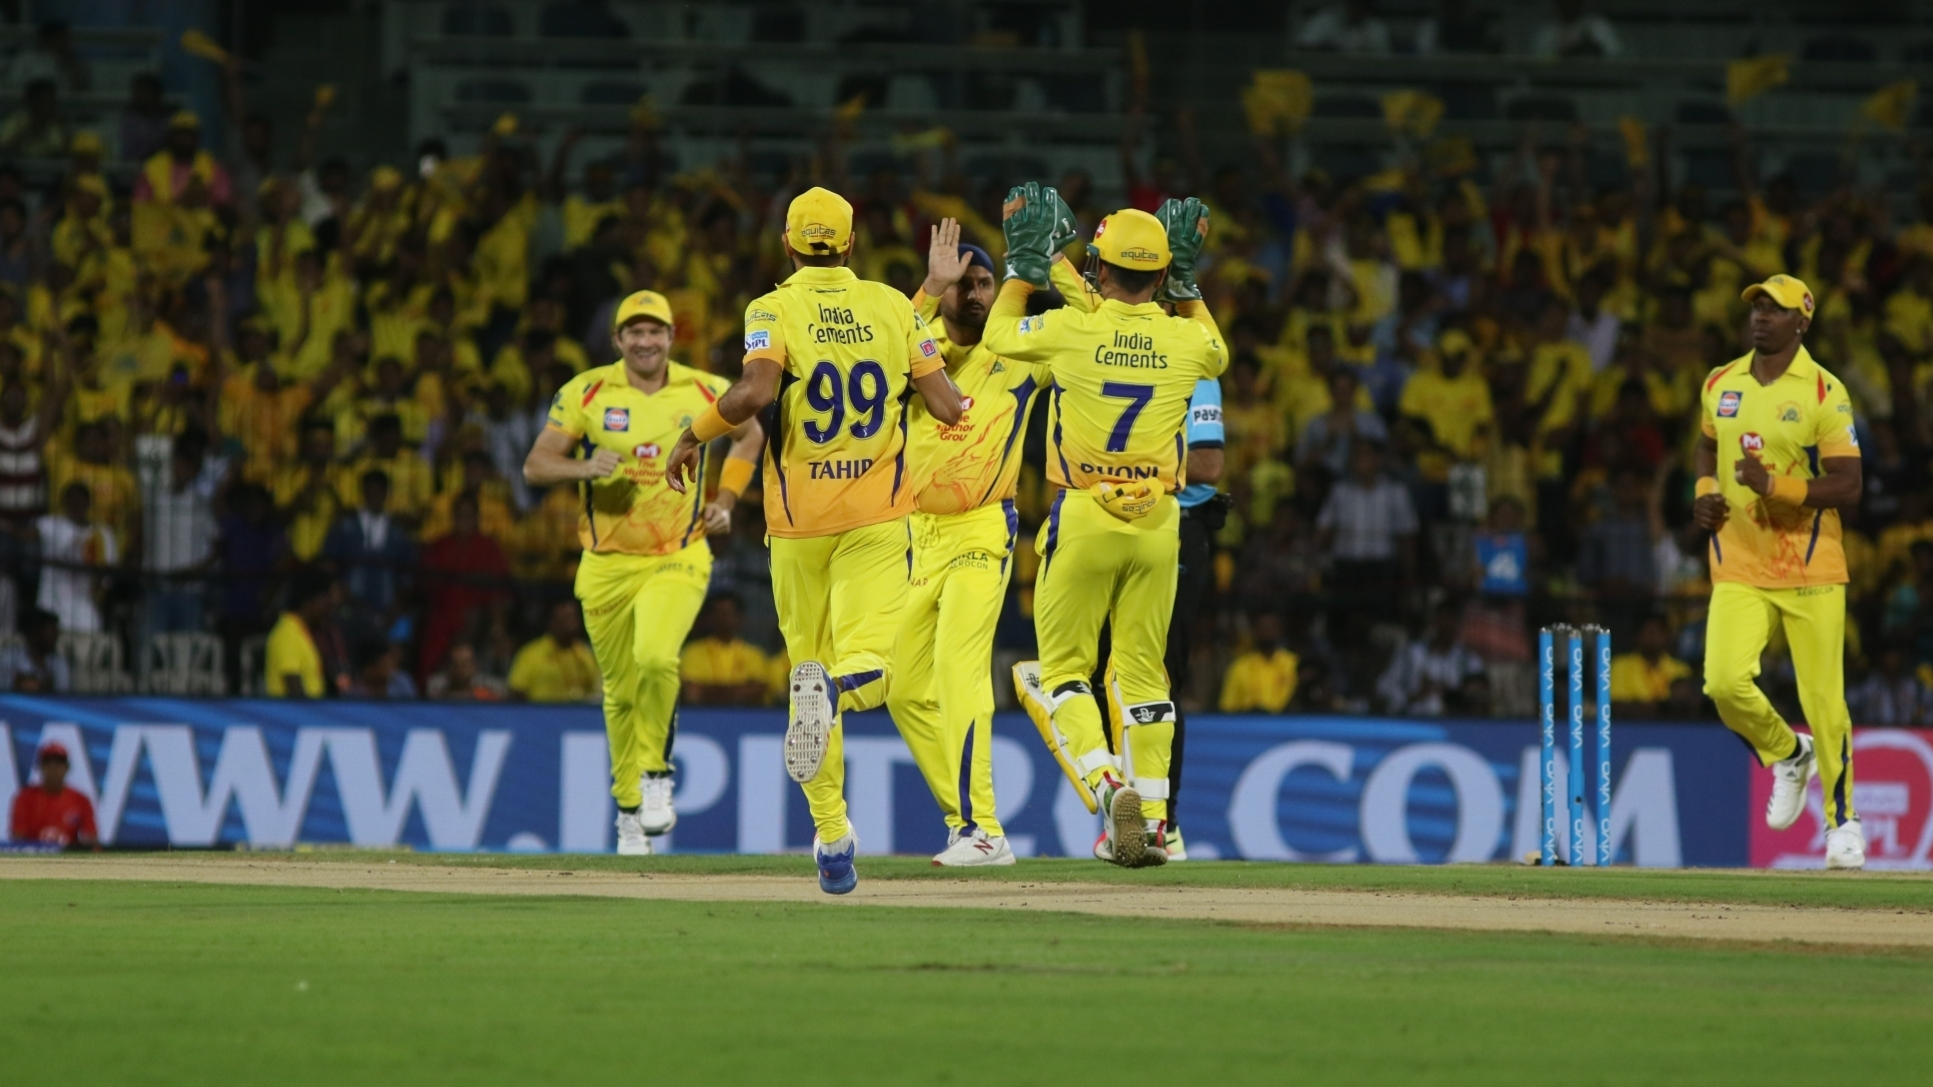 IPL 2018: Twitteratis laud Chennai Super Kings' epic run-chase against Kolkata Knight Riders